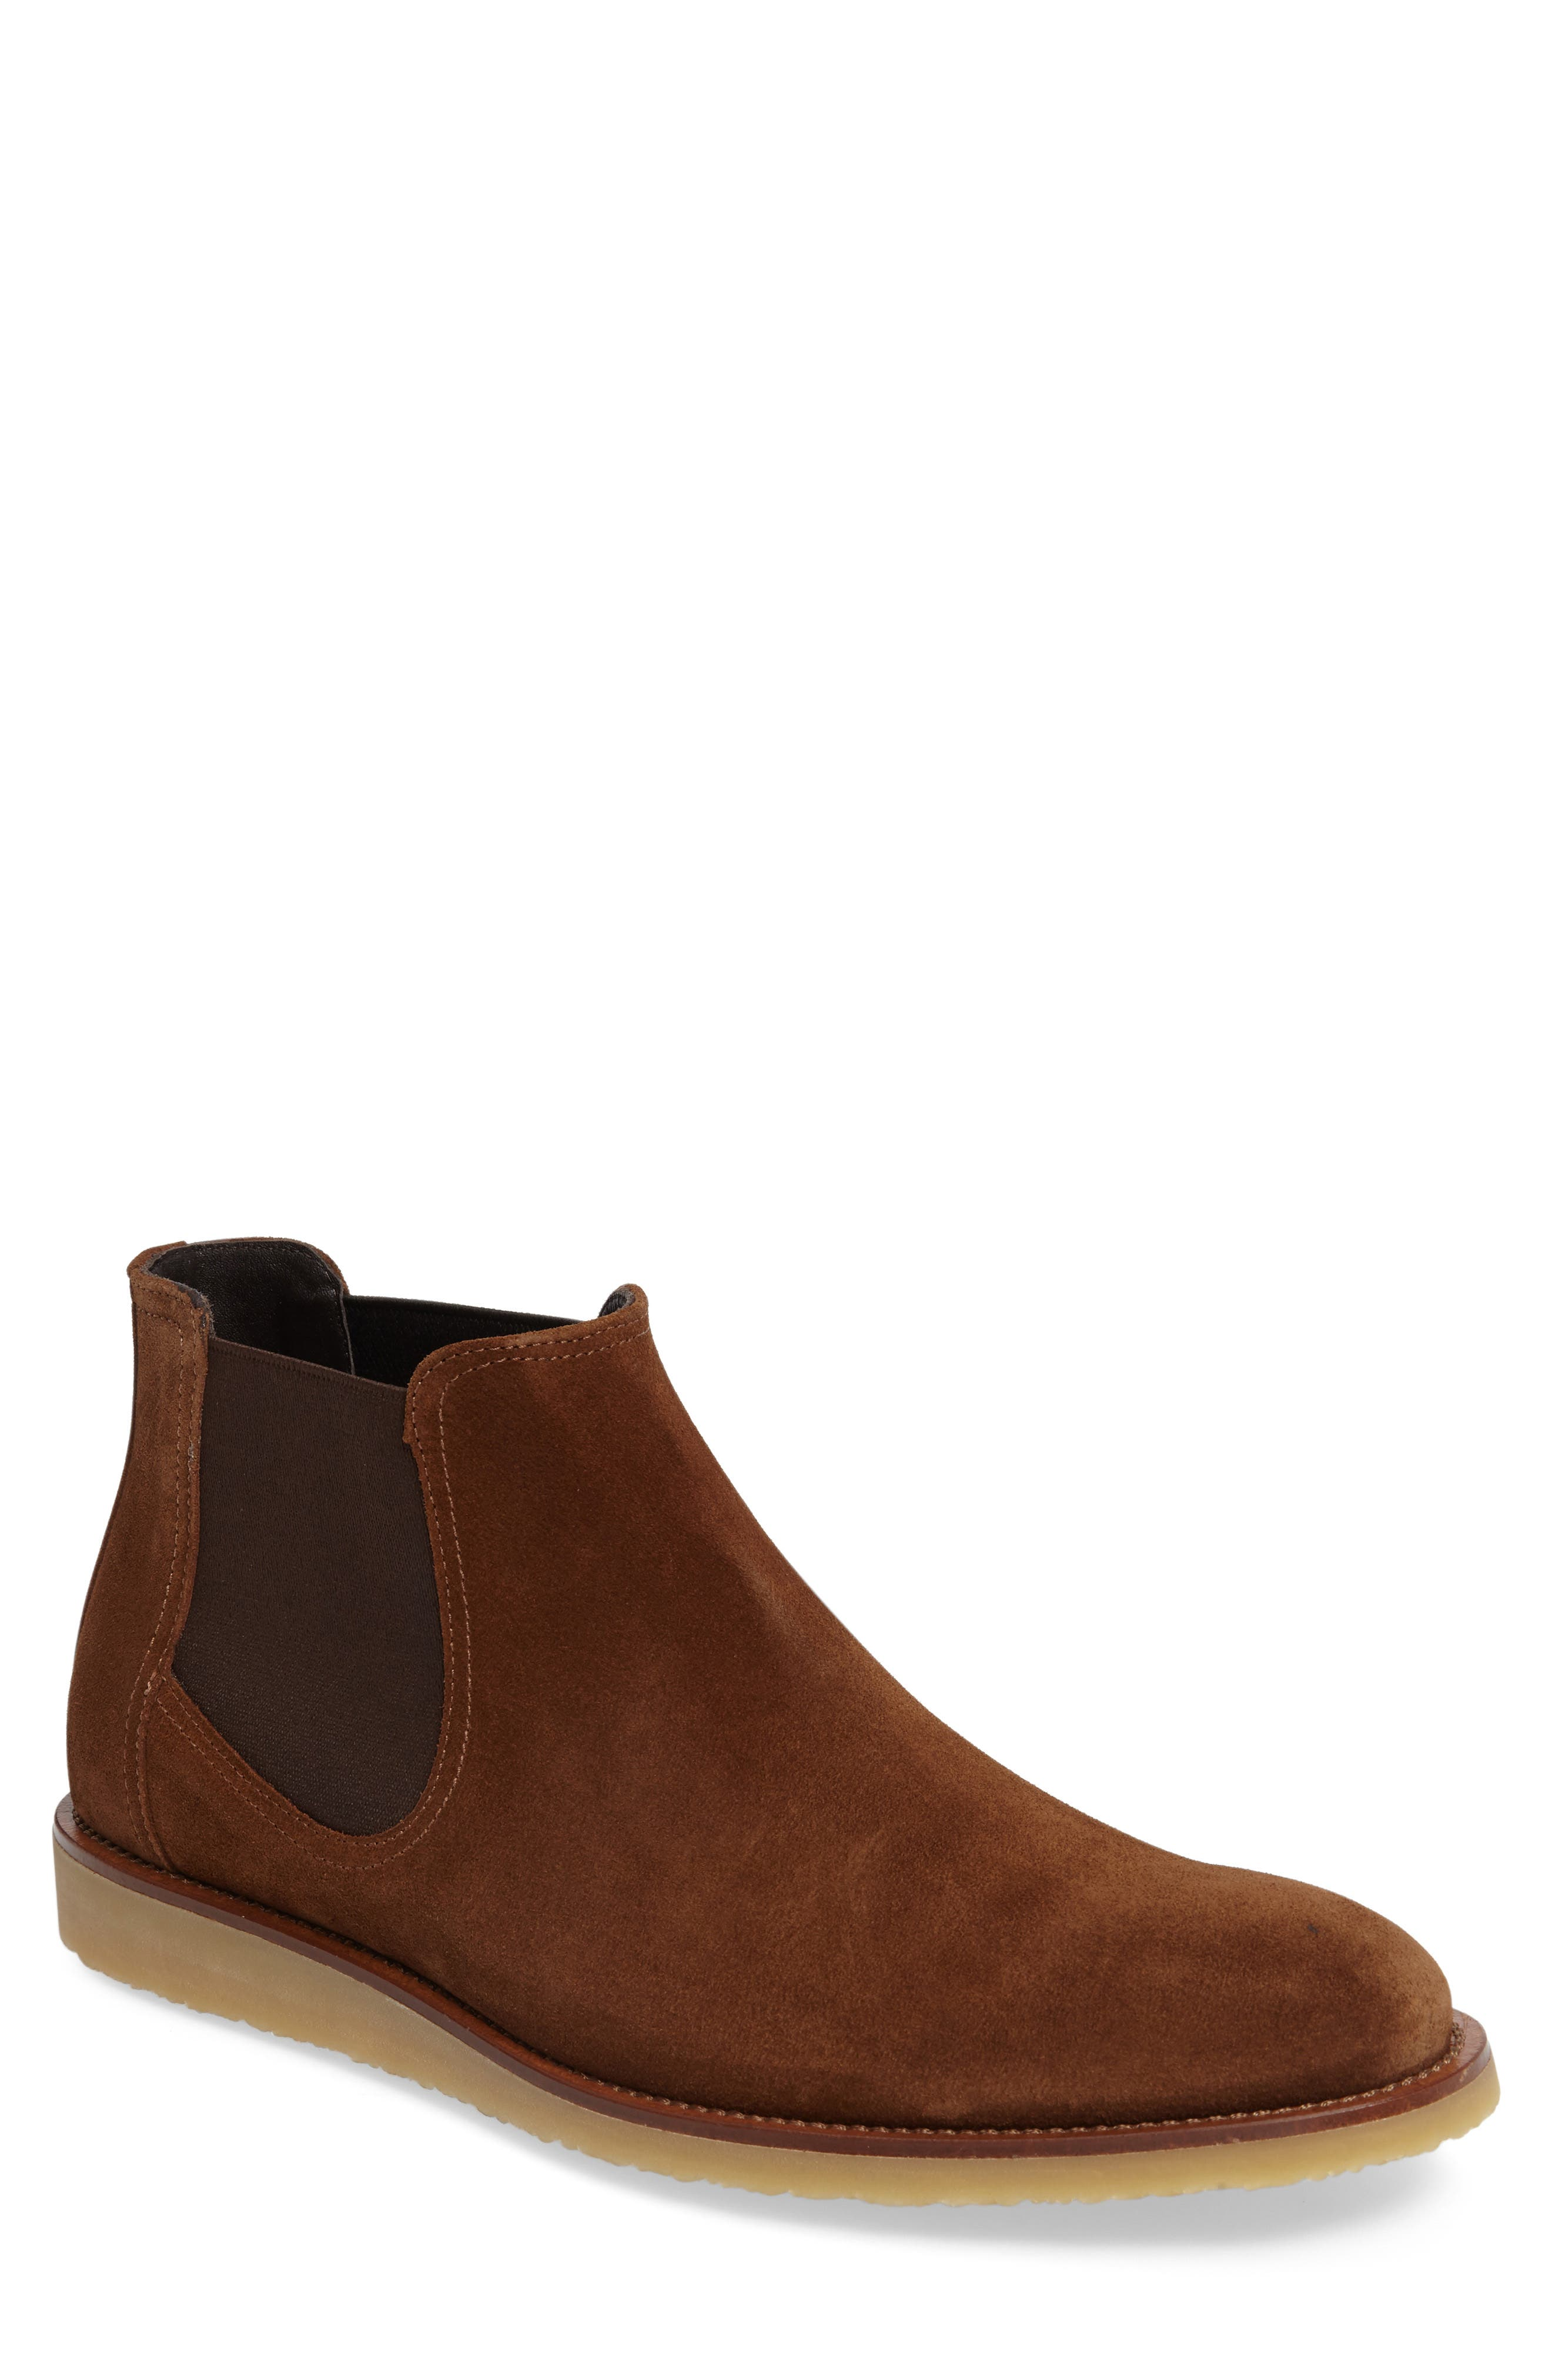 March Chelsea Boot,                         Main,                         color, Brown/ Brown Suede